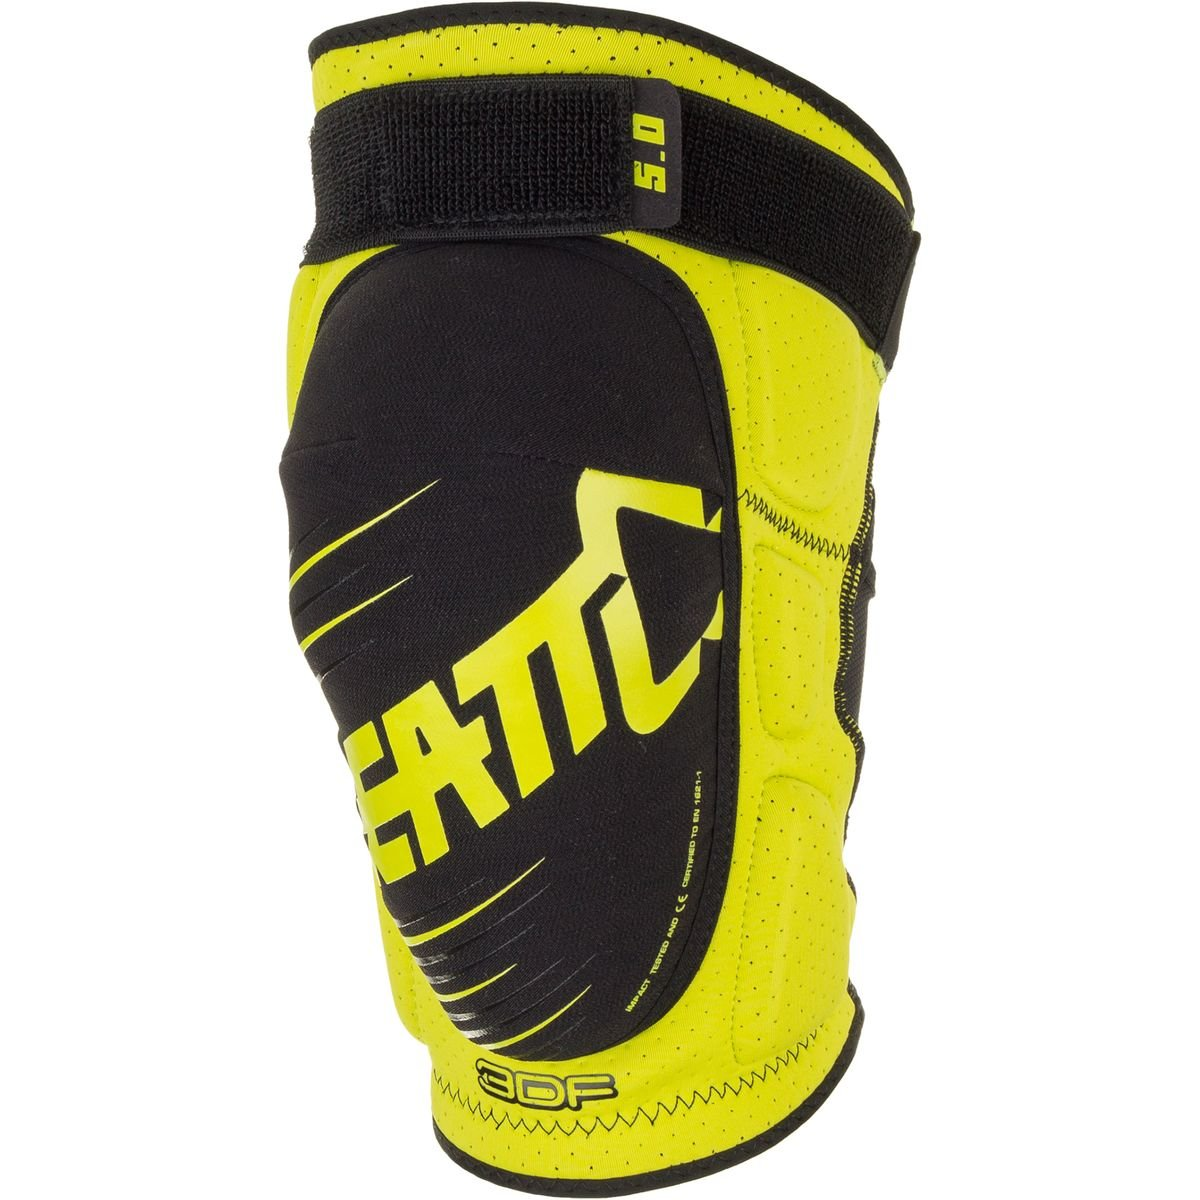 Leatt 3DF 5.0 Knee Guard (Lime/Black, Small/Medium)